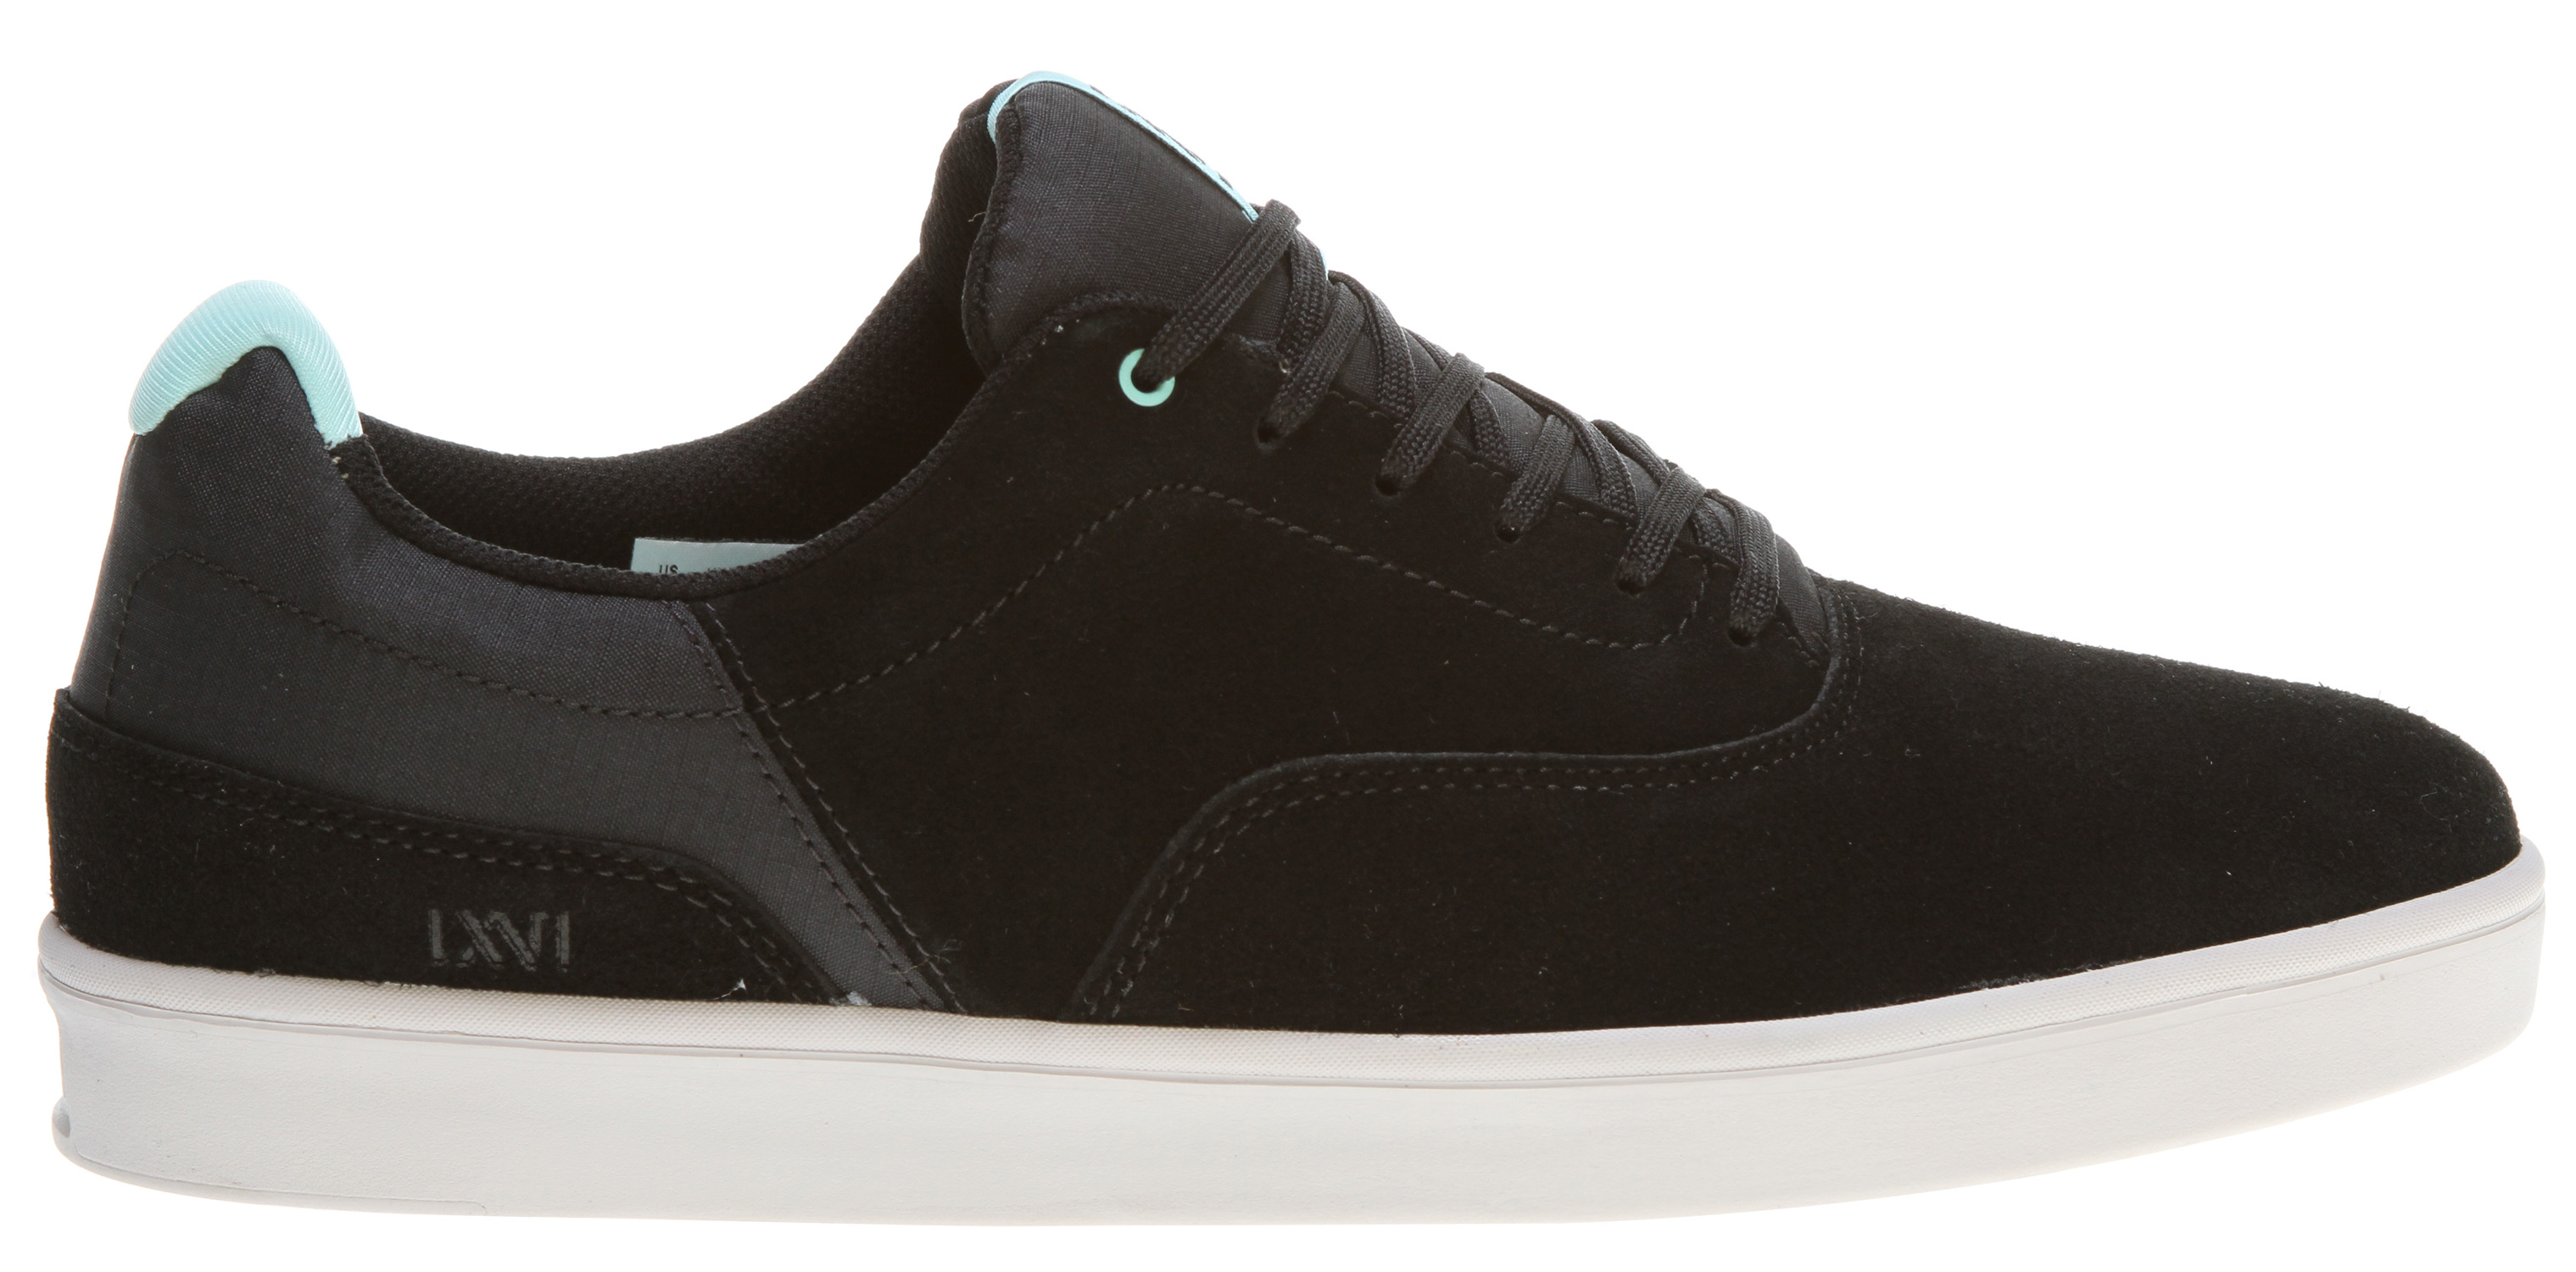 Skateboard Performance driven modernized era styling.Key Features of the Vans Variable Skate Shoes: ActionFit WaffleFlex UltraCush Lite midsole PleasureCuff - $52.95